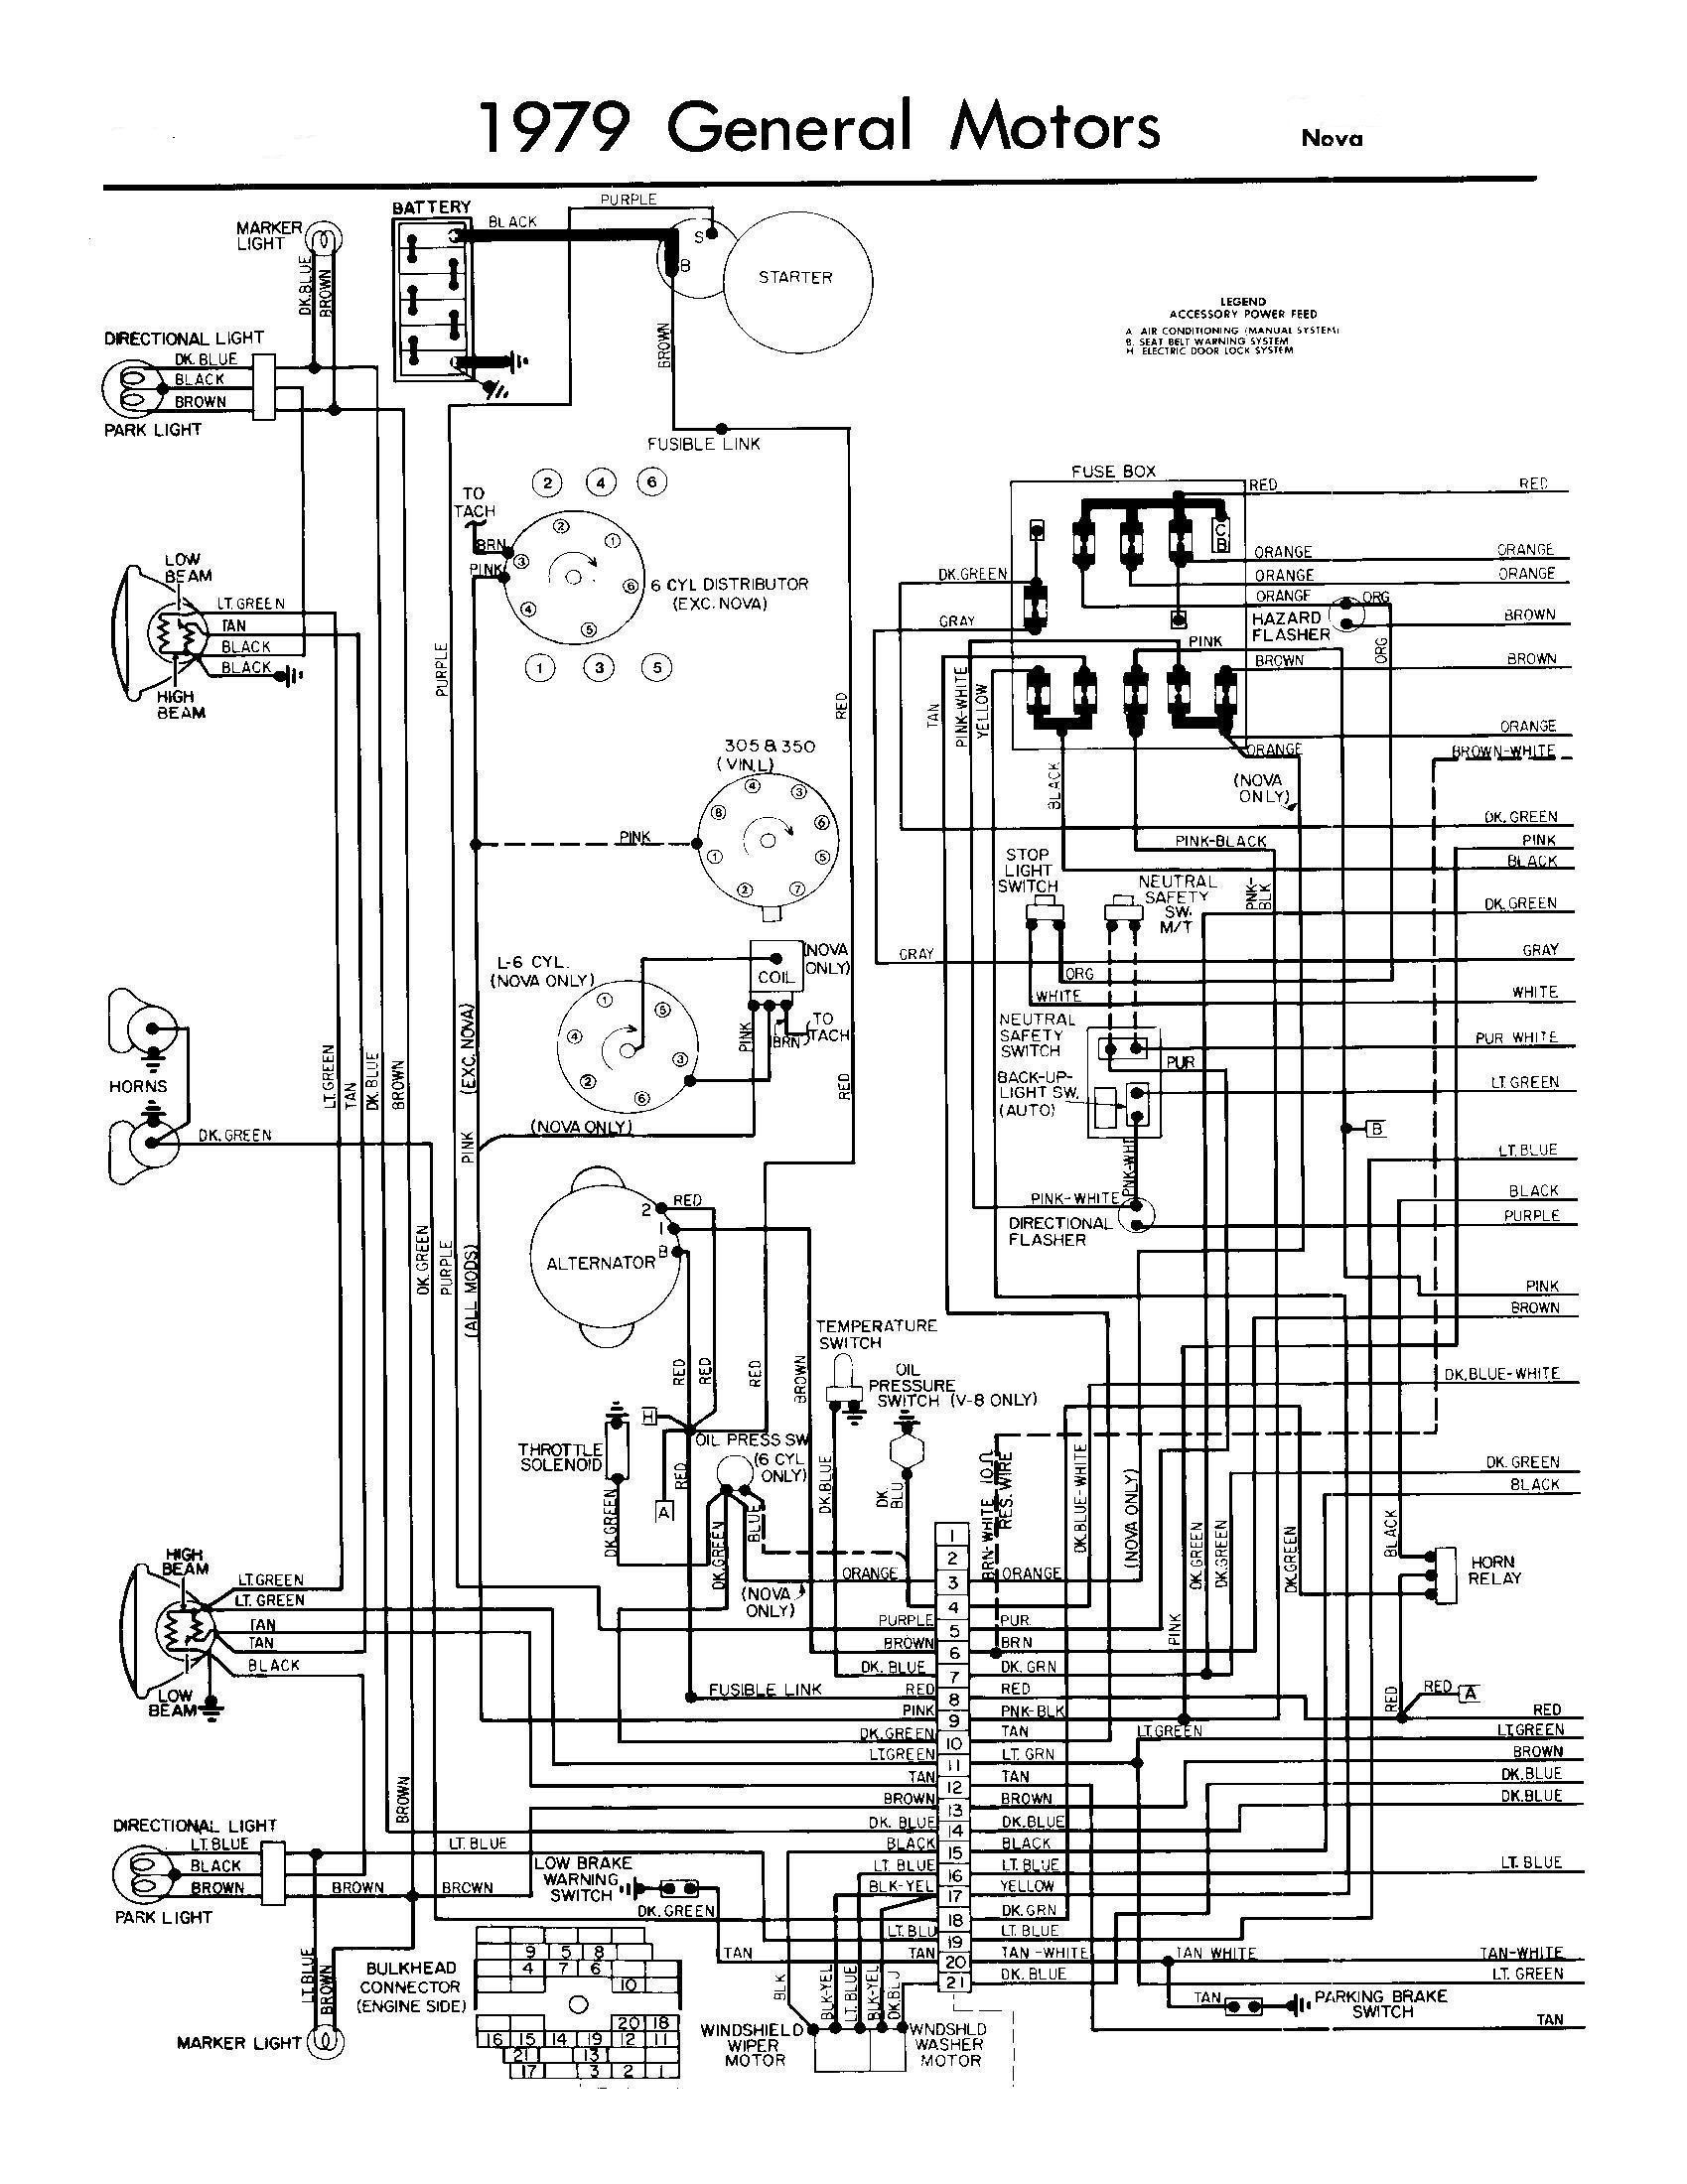 1969 chevy c10 heater wiring harness wiring diagram1966 c10 wiring harness wiring data diagram1966 chevy c10 wiring harness free download diagram wiring diagram